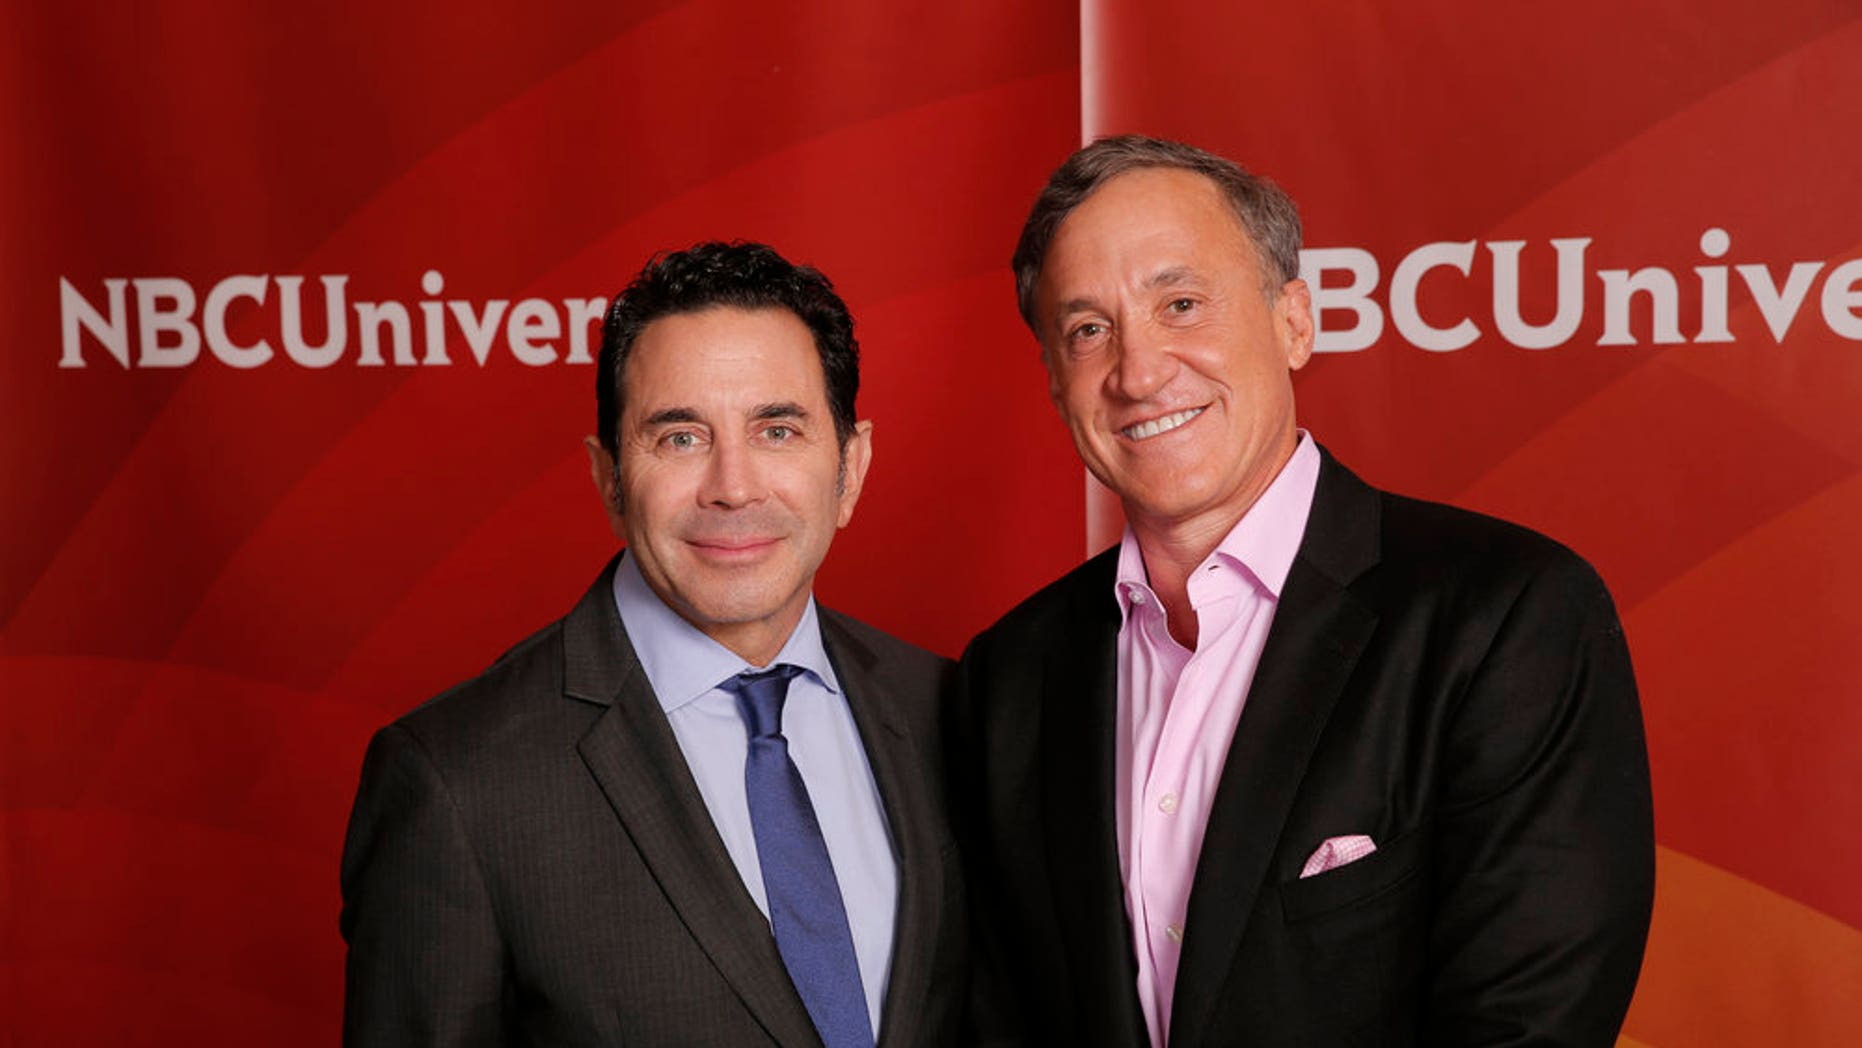 """NBCUNIVERSAL EVENTS -- NBCUniversal Summer Press Tour, August 3, 2016 -- E!s, """"Botched By Nature""""  cast -- Pictured: (l-r) Dr. Paul Nassif, Dr. Terry Dubrow -- (Photo by: Chris Haston/NBCUniversal)"""